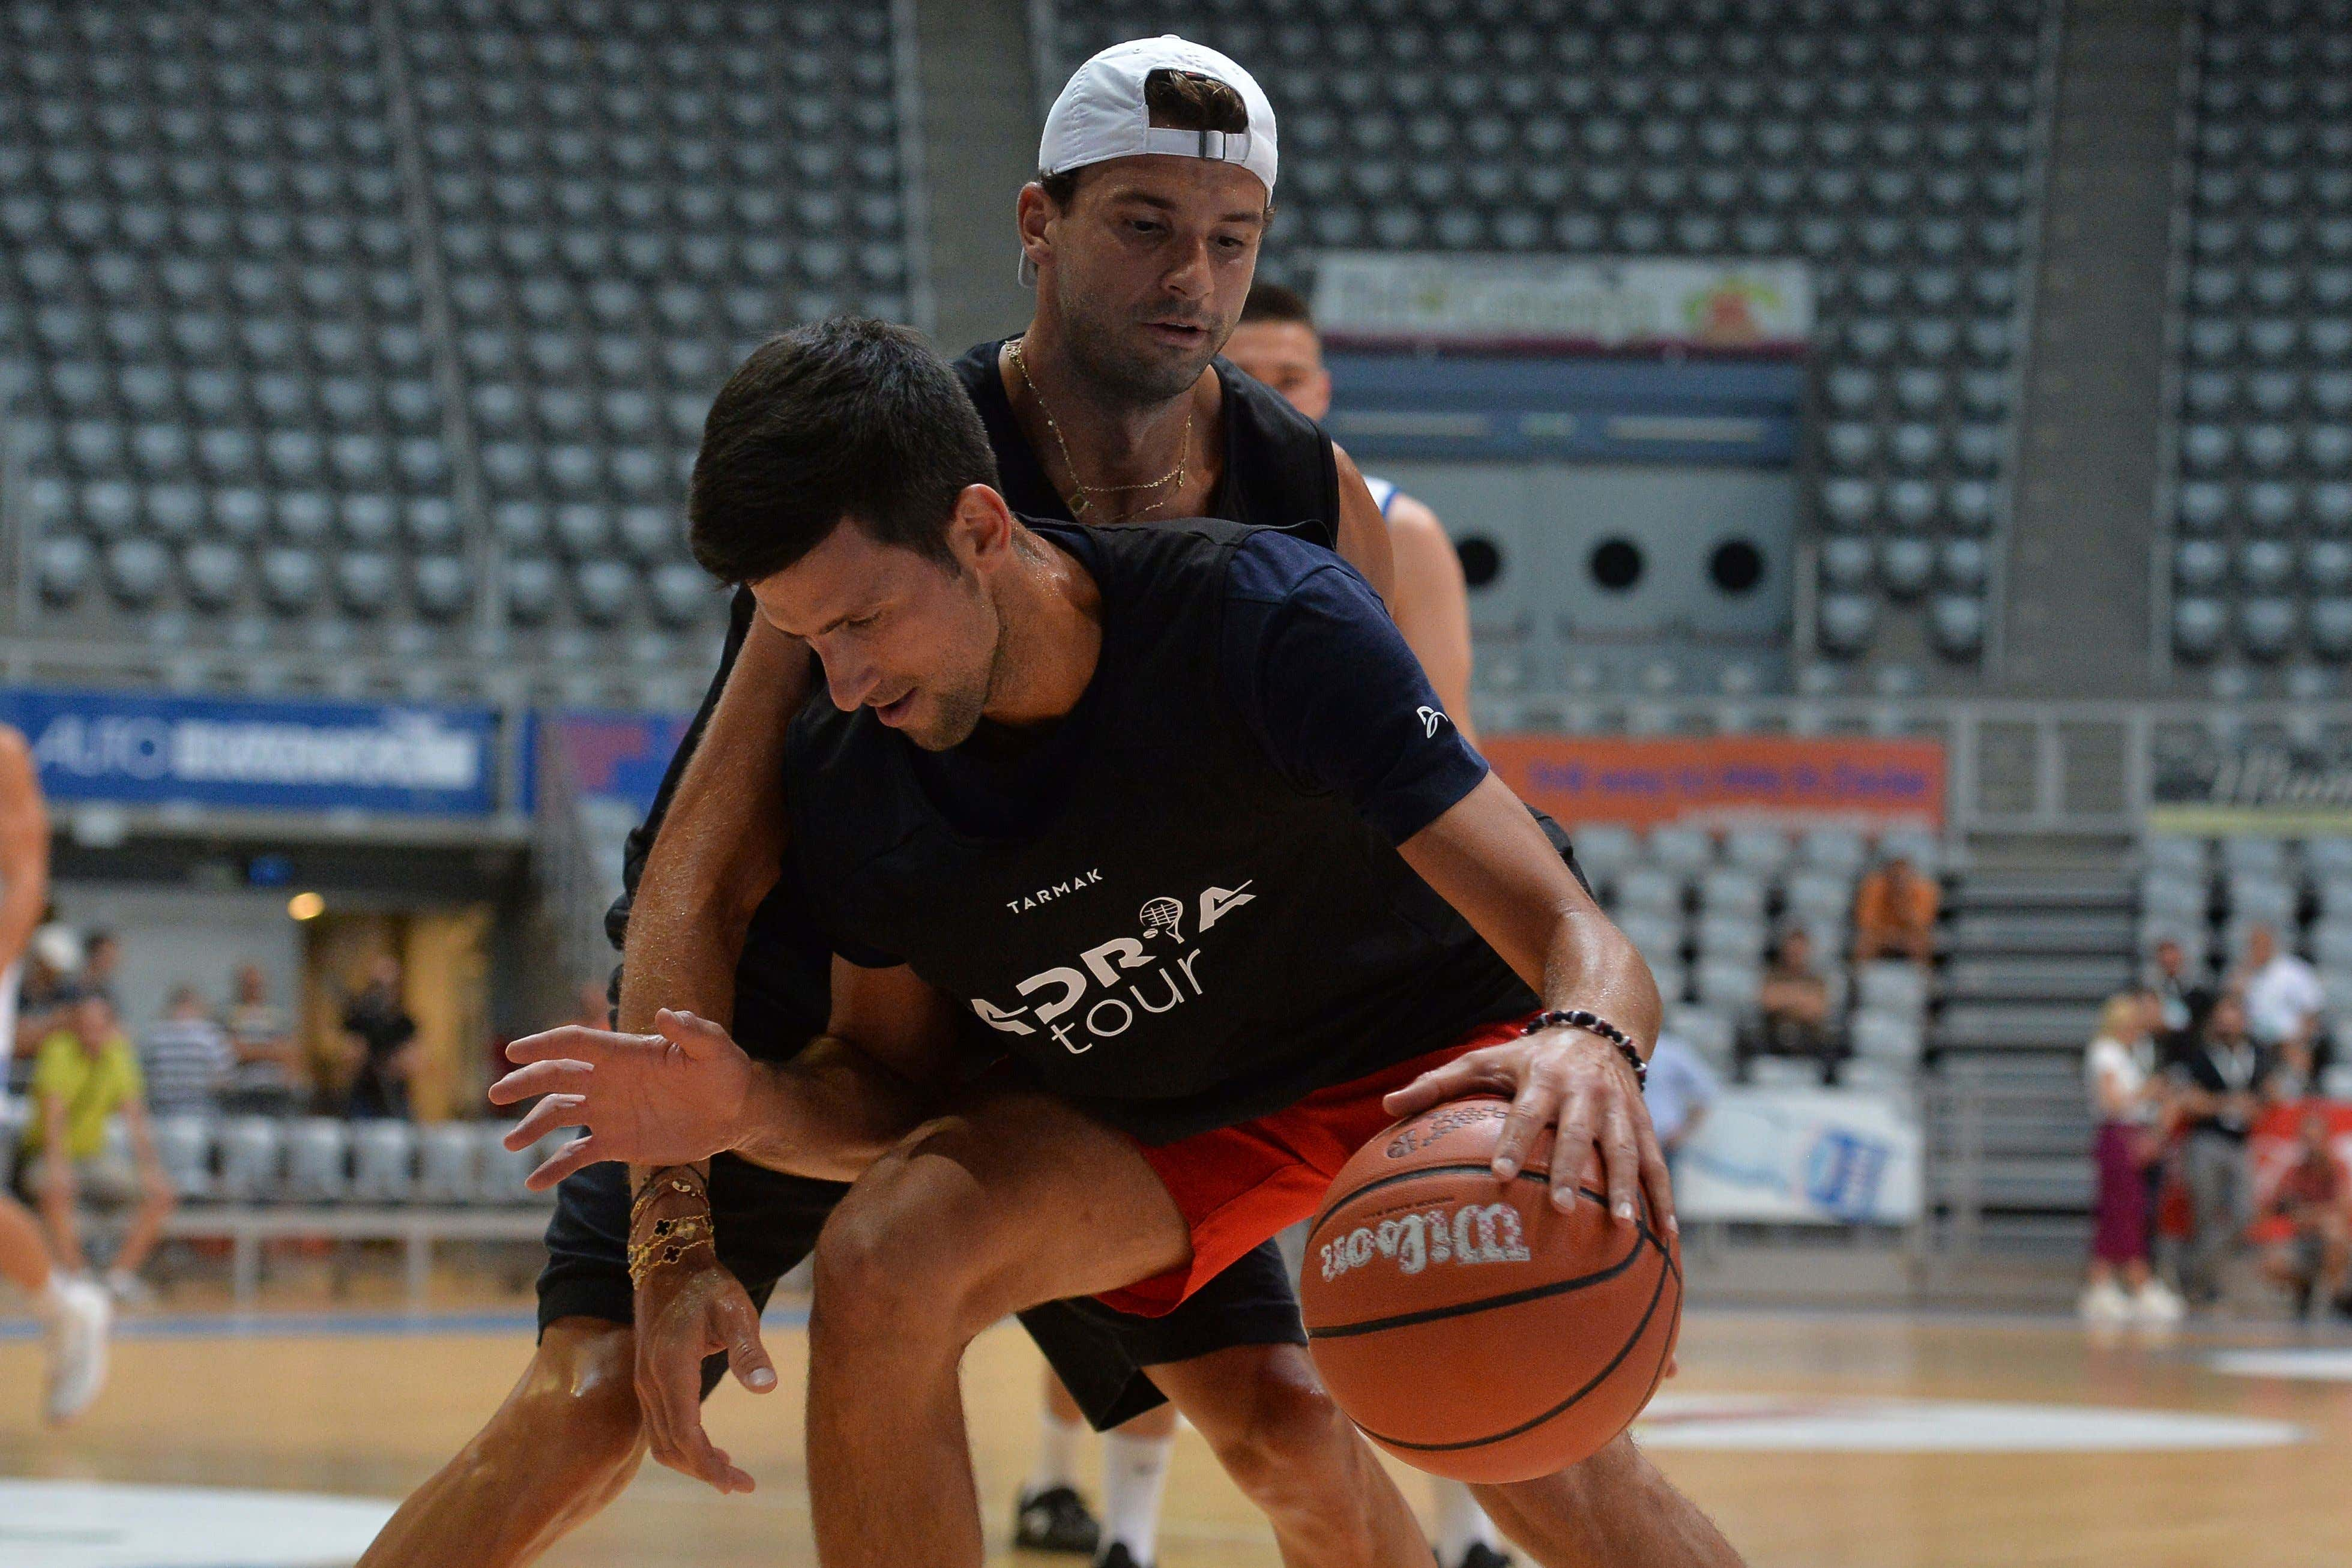 On, Bulgarian tennis player Grigor Dimitrov, rear, plays basketball with Serbia's Novak Djokovic in Zadar, Croatia. Dimitrovsays he has tested positive for COVID-19 and his announcement led to the cancellation of an exhibition event in Croatia where Novak Djokovic was scheduled to play on Sunday, June 21